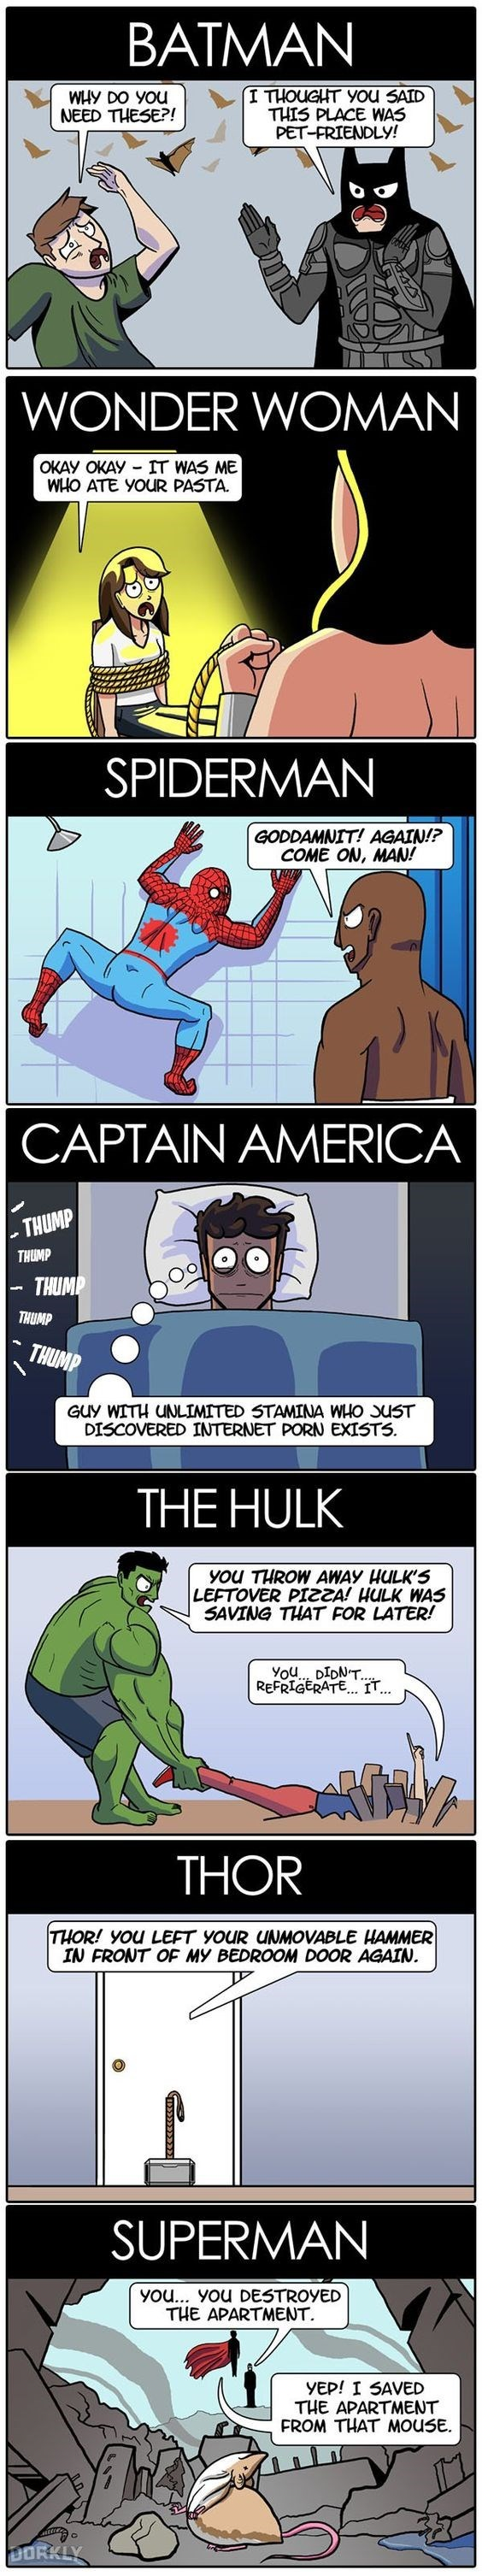 superheroes-would-make-for-real-tough-roommates